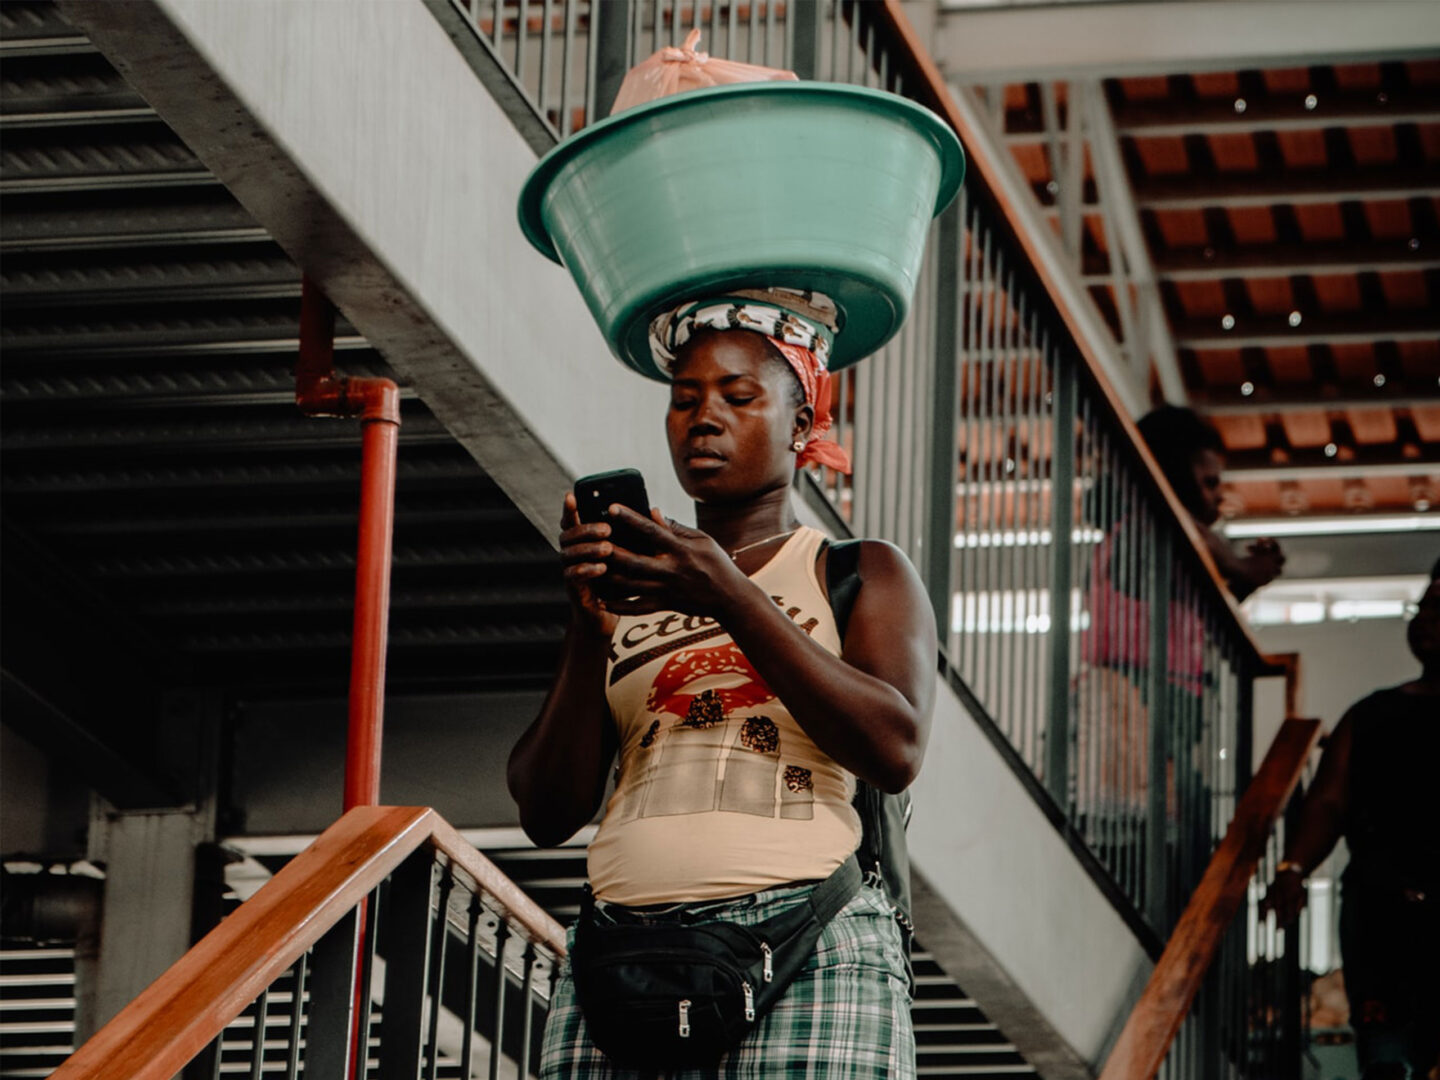 Woman in Africa reading her phone while carrying a basket on her head.